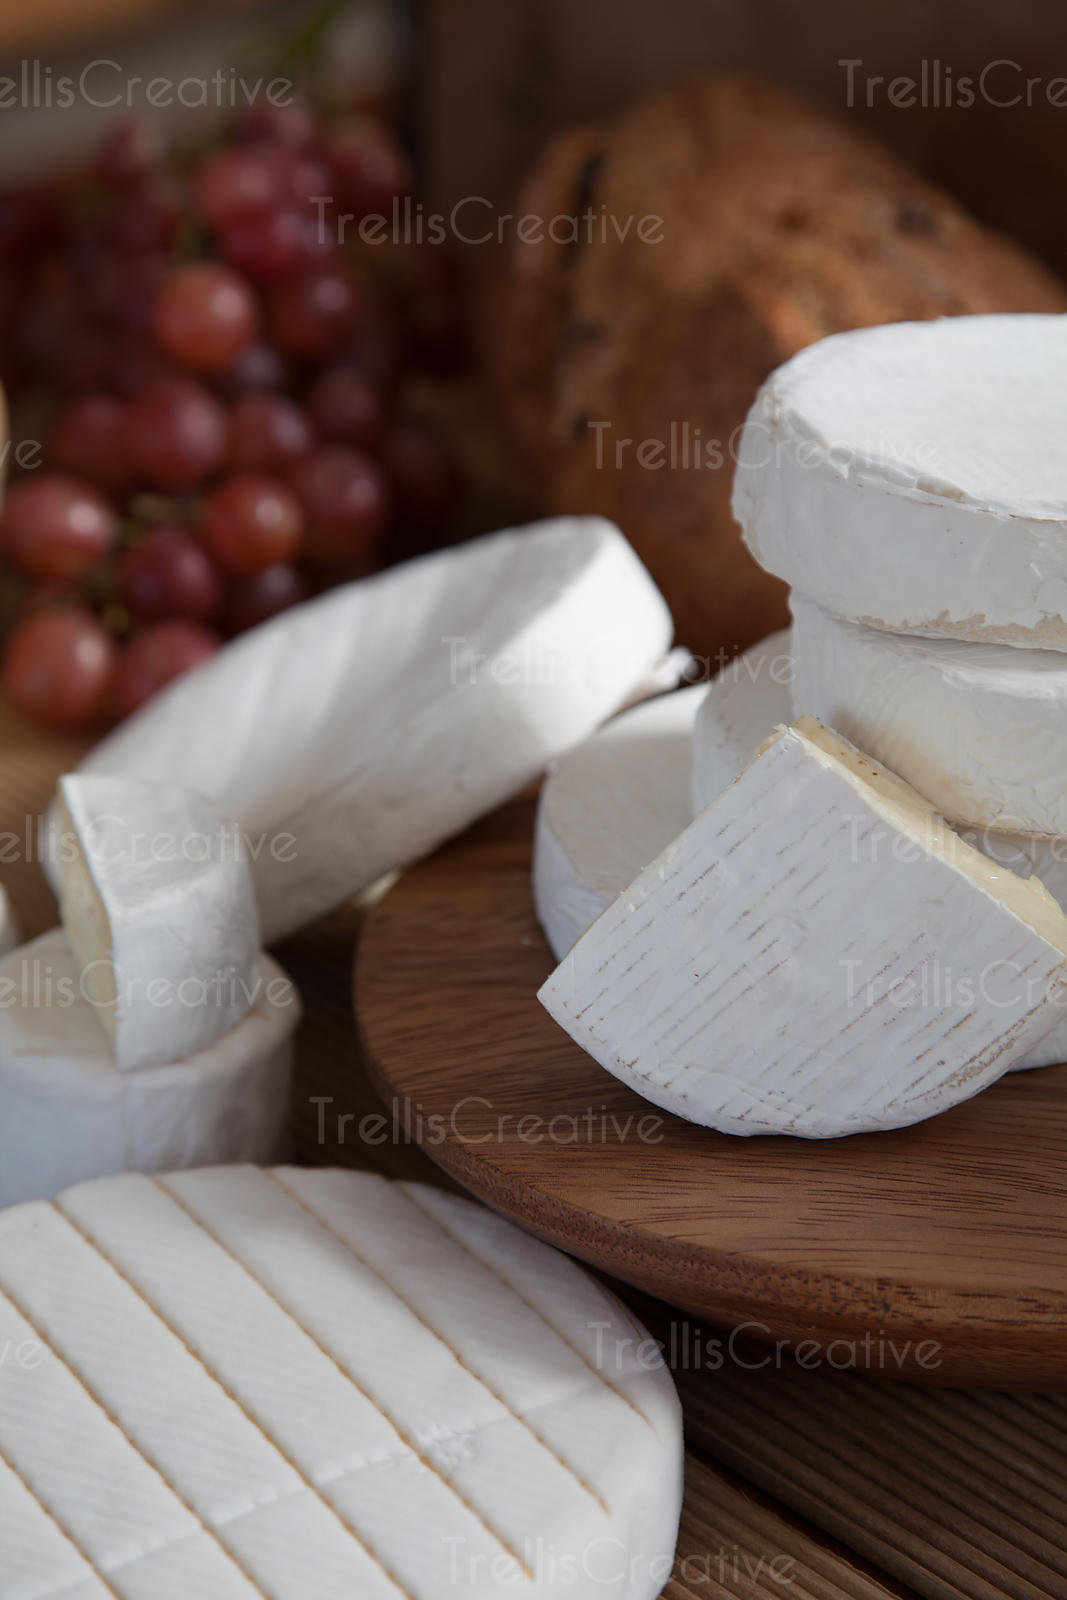 Stacks of brie cheese wheels and wedges on a wooden board with grapes and bread